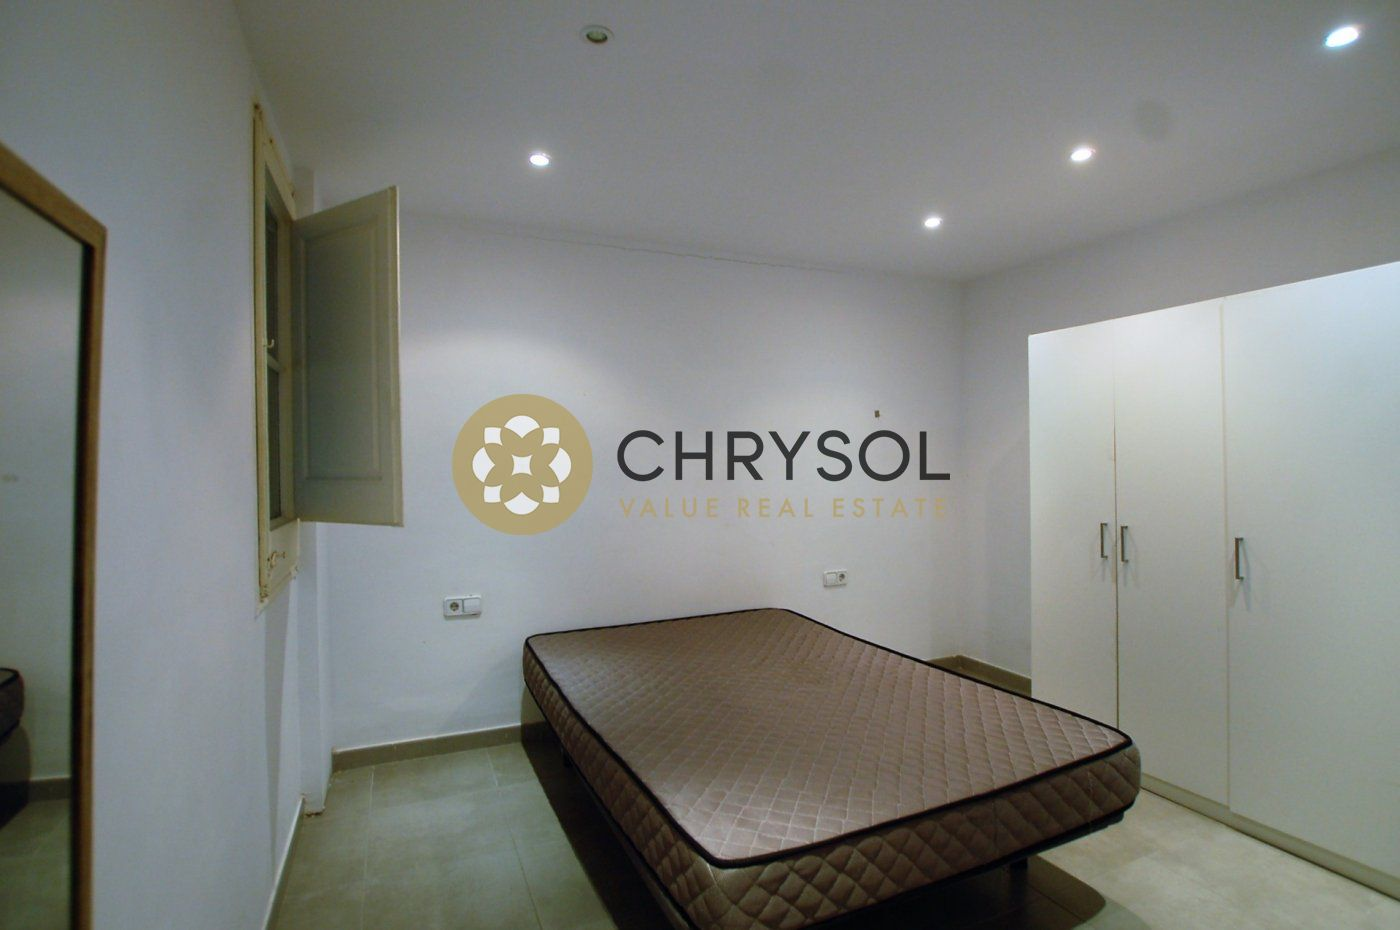 Photogallery - 13 - Chrysol Value